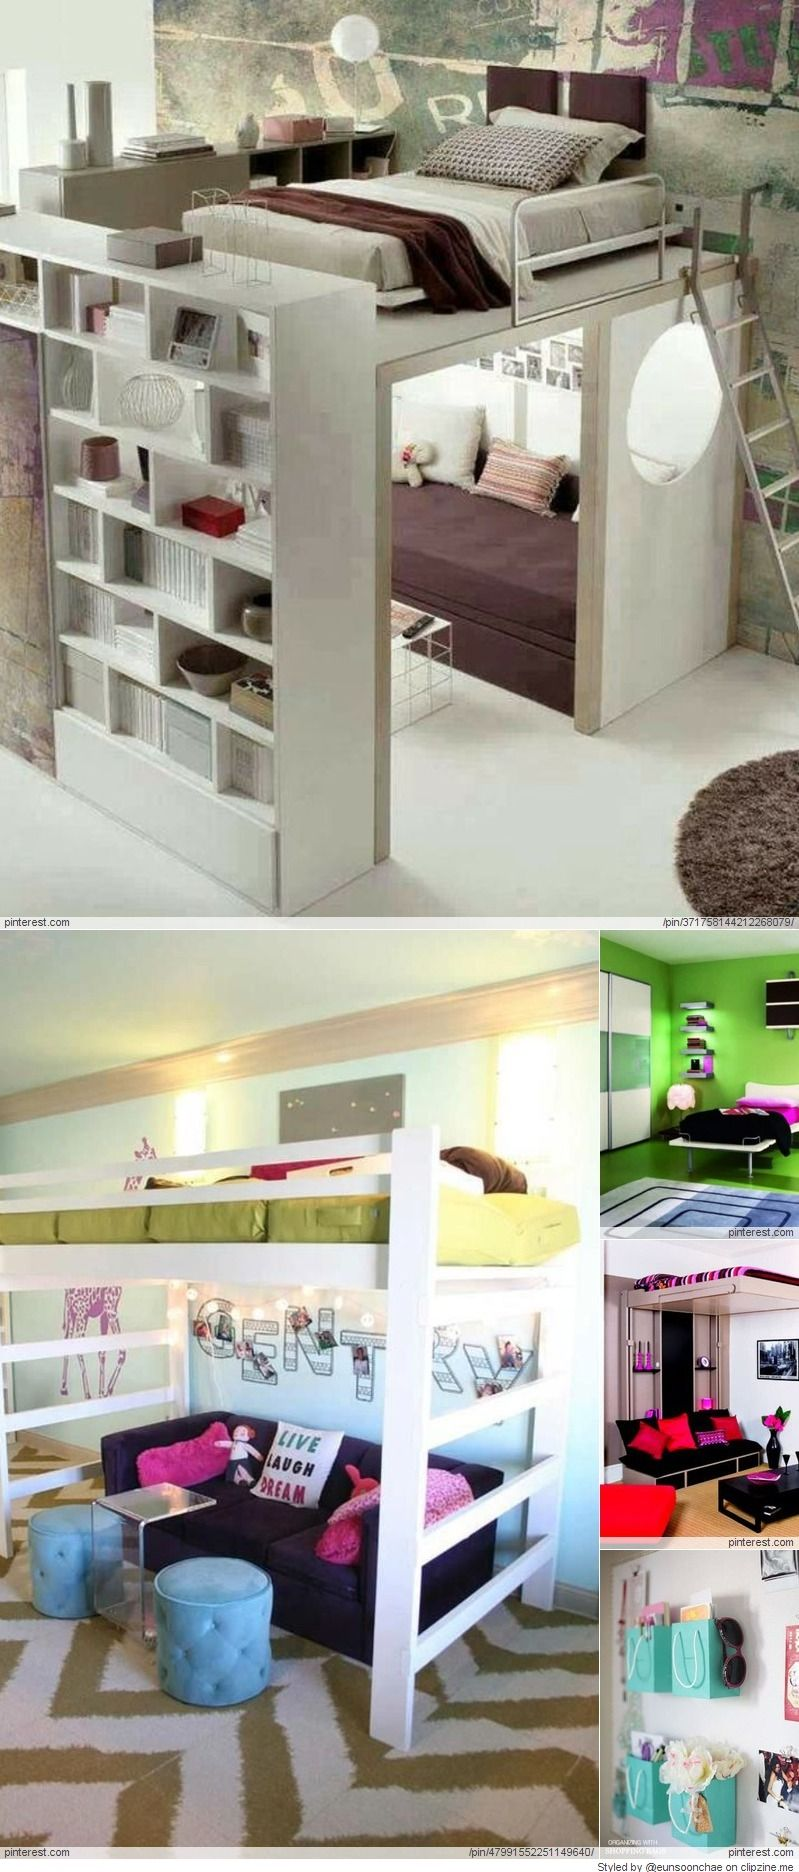 Small loft bed ideas  Room Decorating Ideas For Teenage Girls  Bedrooms for   Pinterest